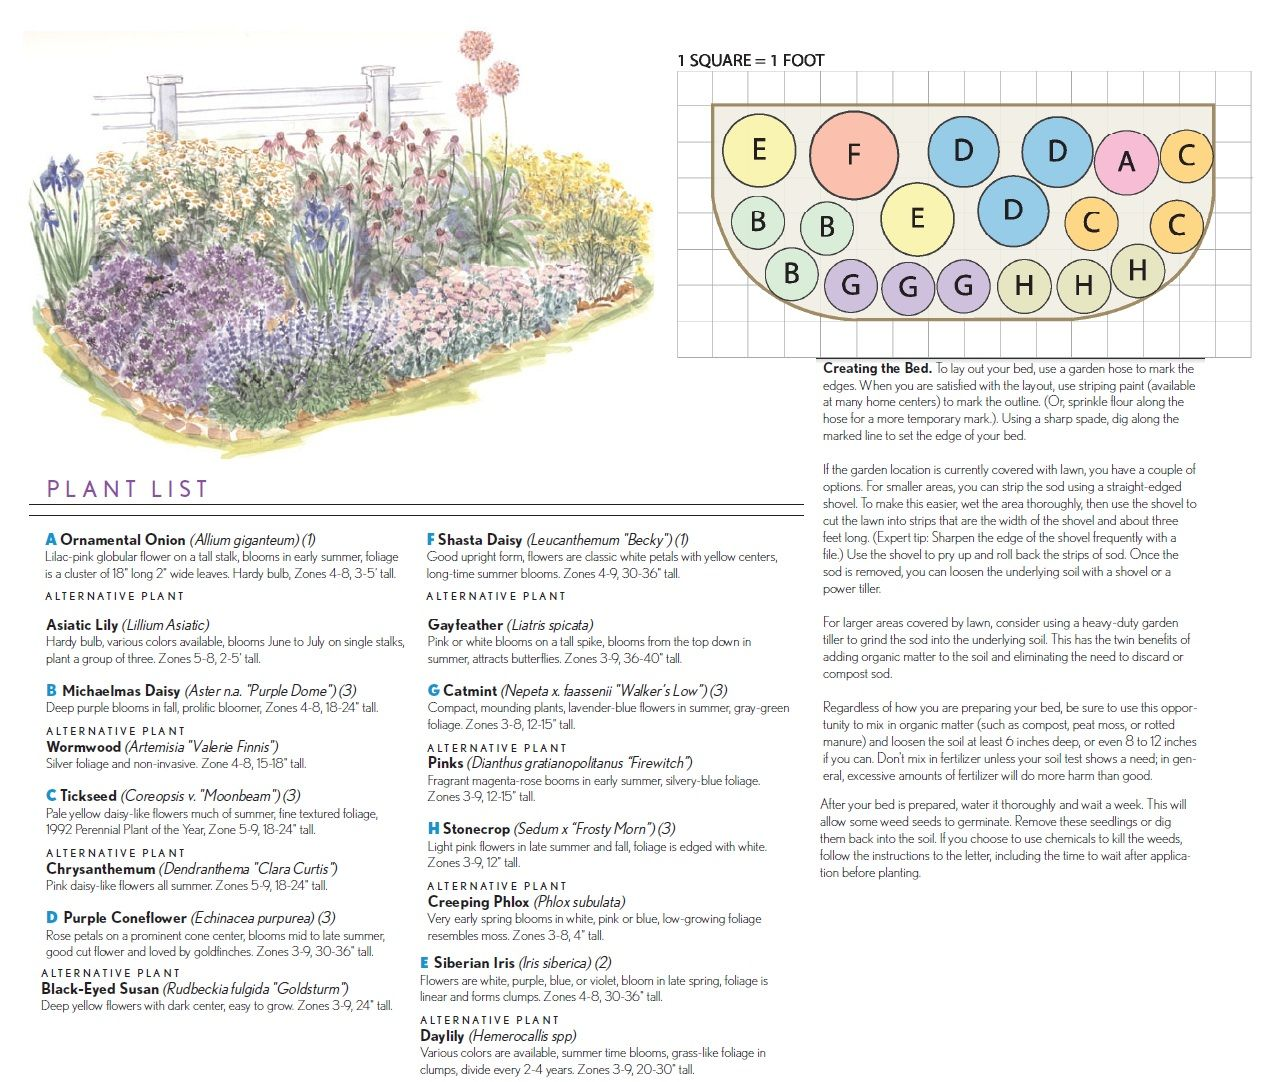 BHG.com Beginning Full Sun Garden Plan With Pictures And Details